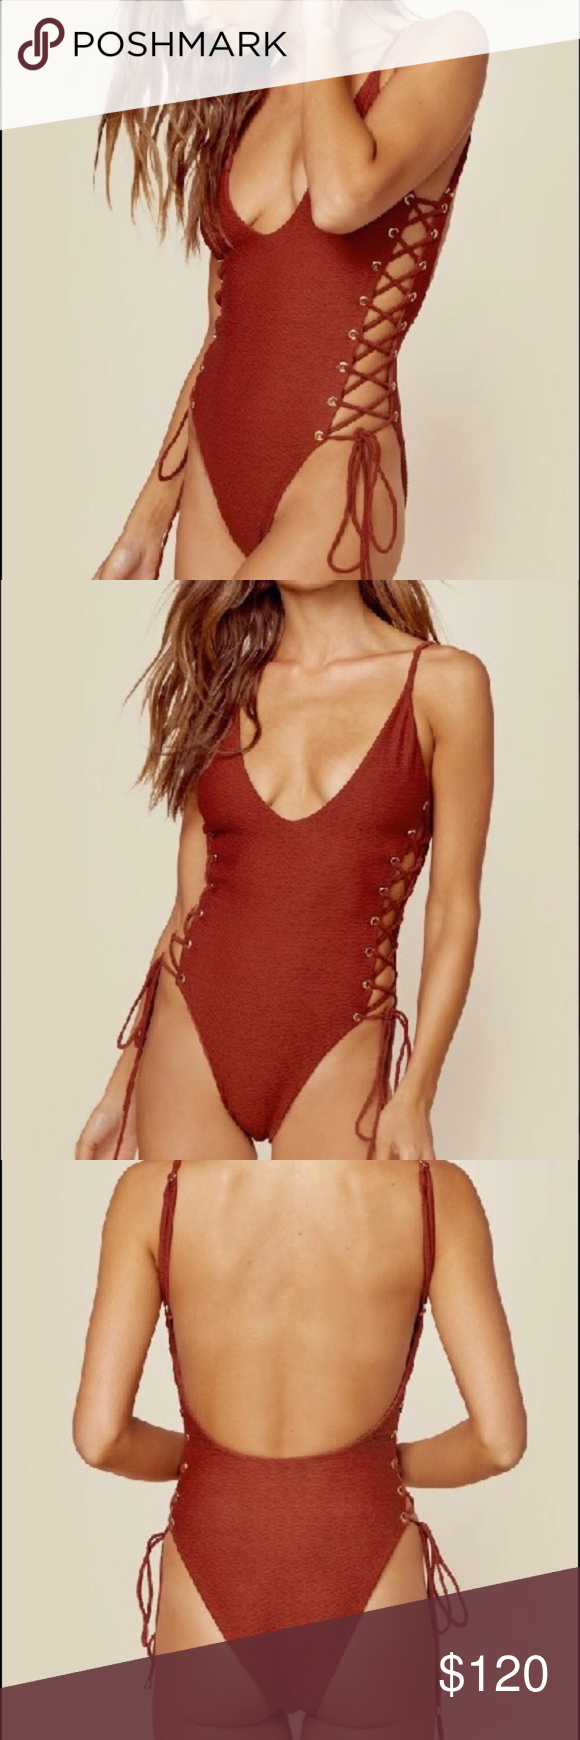 e974f8d488 ✨Blue Life Roped Up One Piece✨ Blue Life Roped Up ❣️Rust Color ❣ Sexy Lace  Up One Piece Swimwear Perfect For Summer ❣  swim  swimsuit  onepiece ...